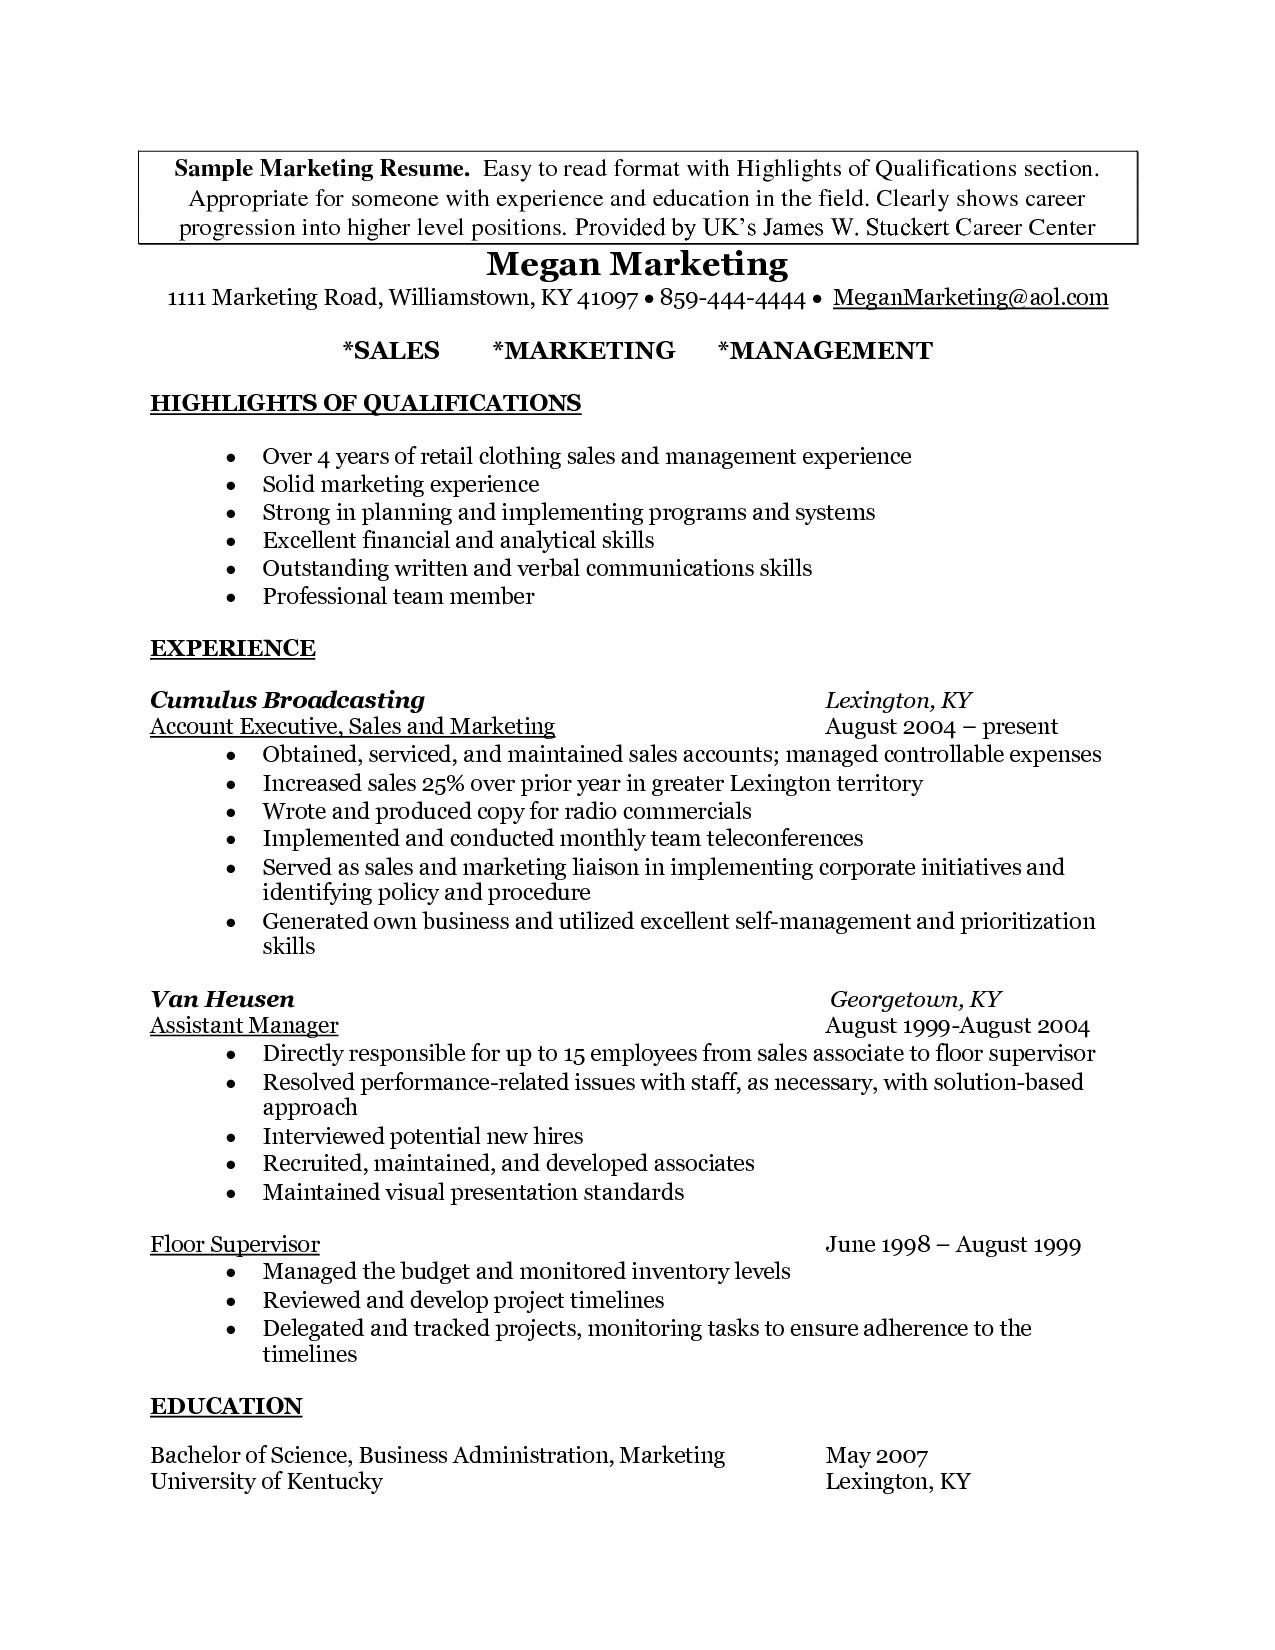 Marketing Cover Letter Template - Cover Letter Examples for Resume Marketing Refrence New Programmer